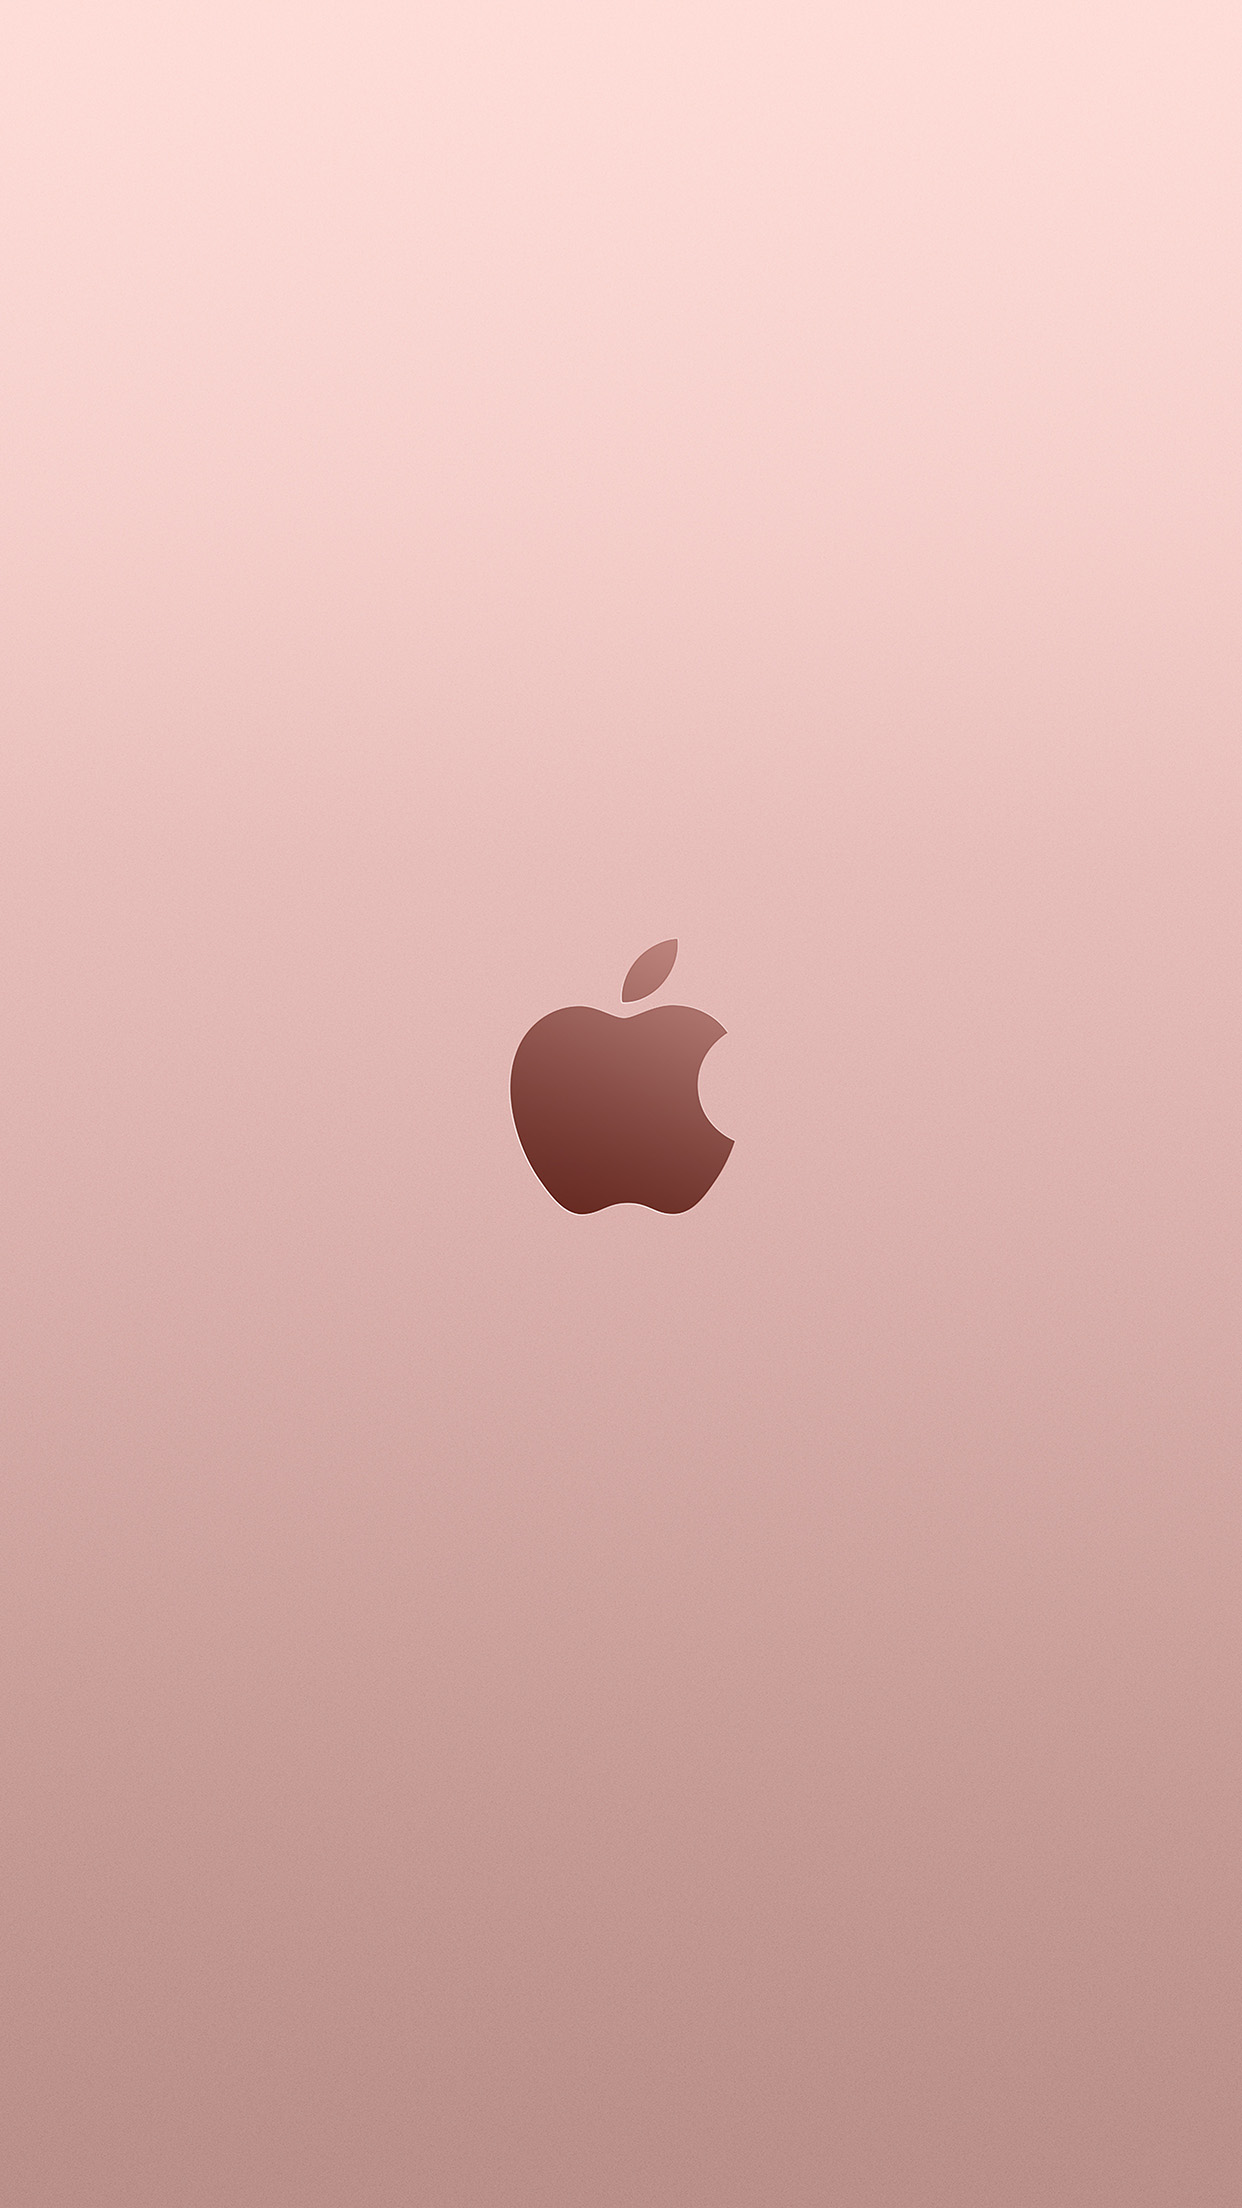 Iphone 6s rose gold hintergrund